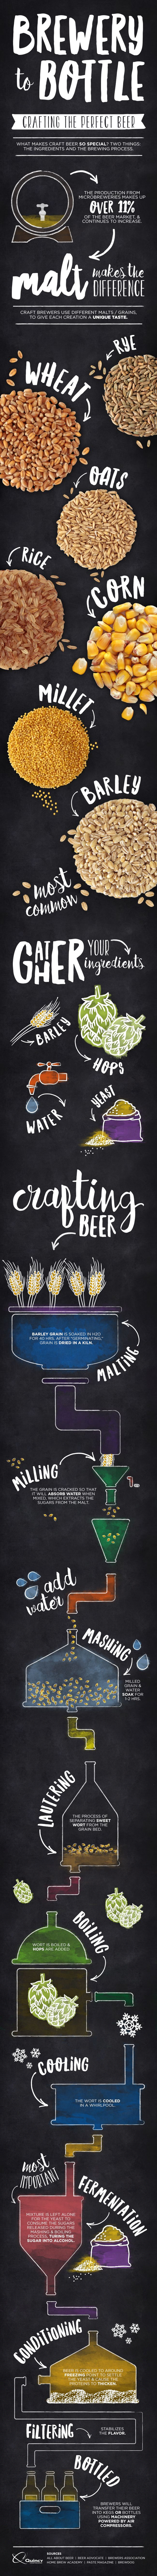 From Brewery to Bottle: How to Make Craft Beer #Infographic #Beer #Food